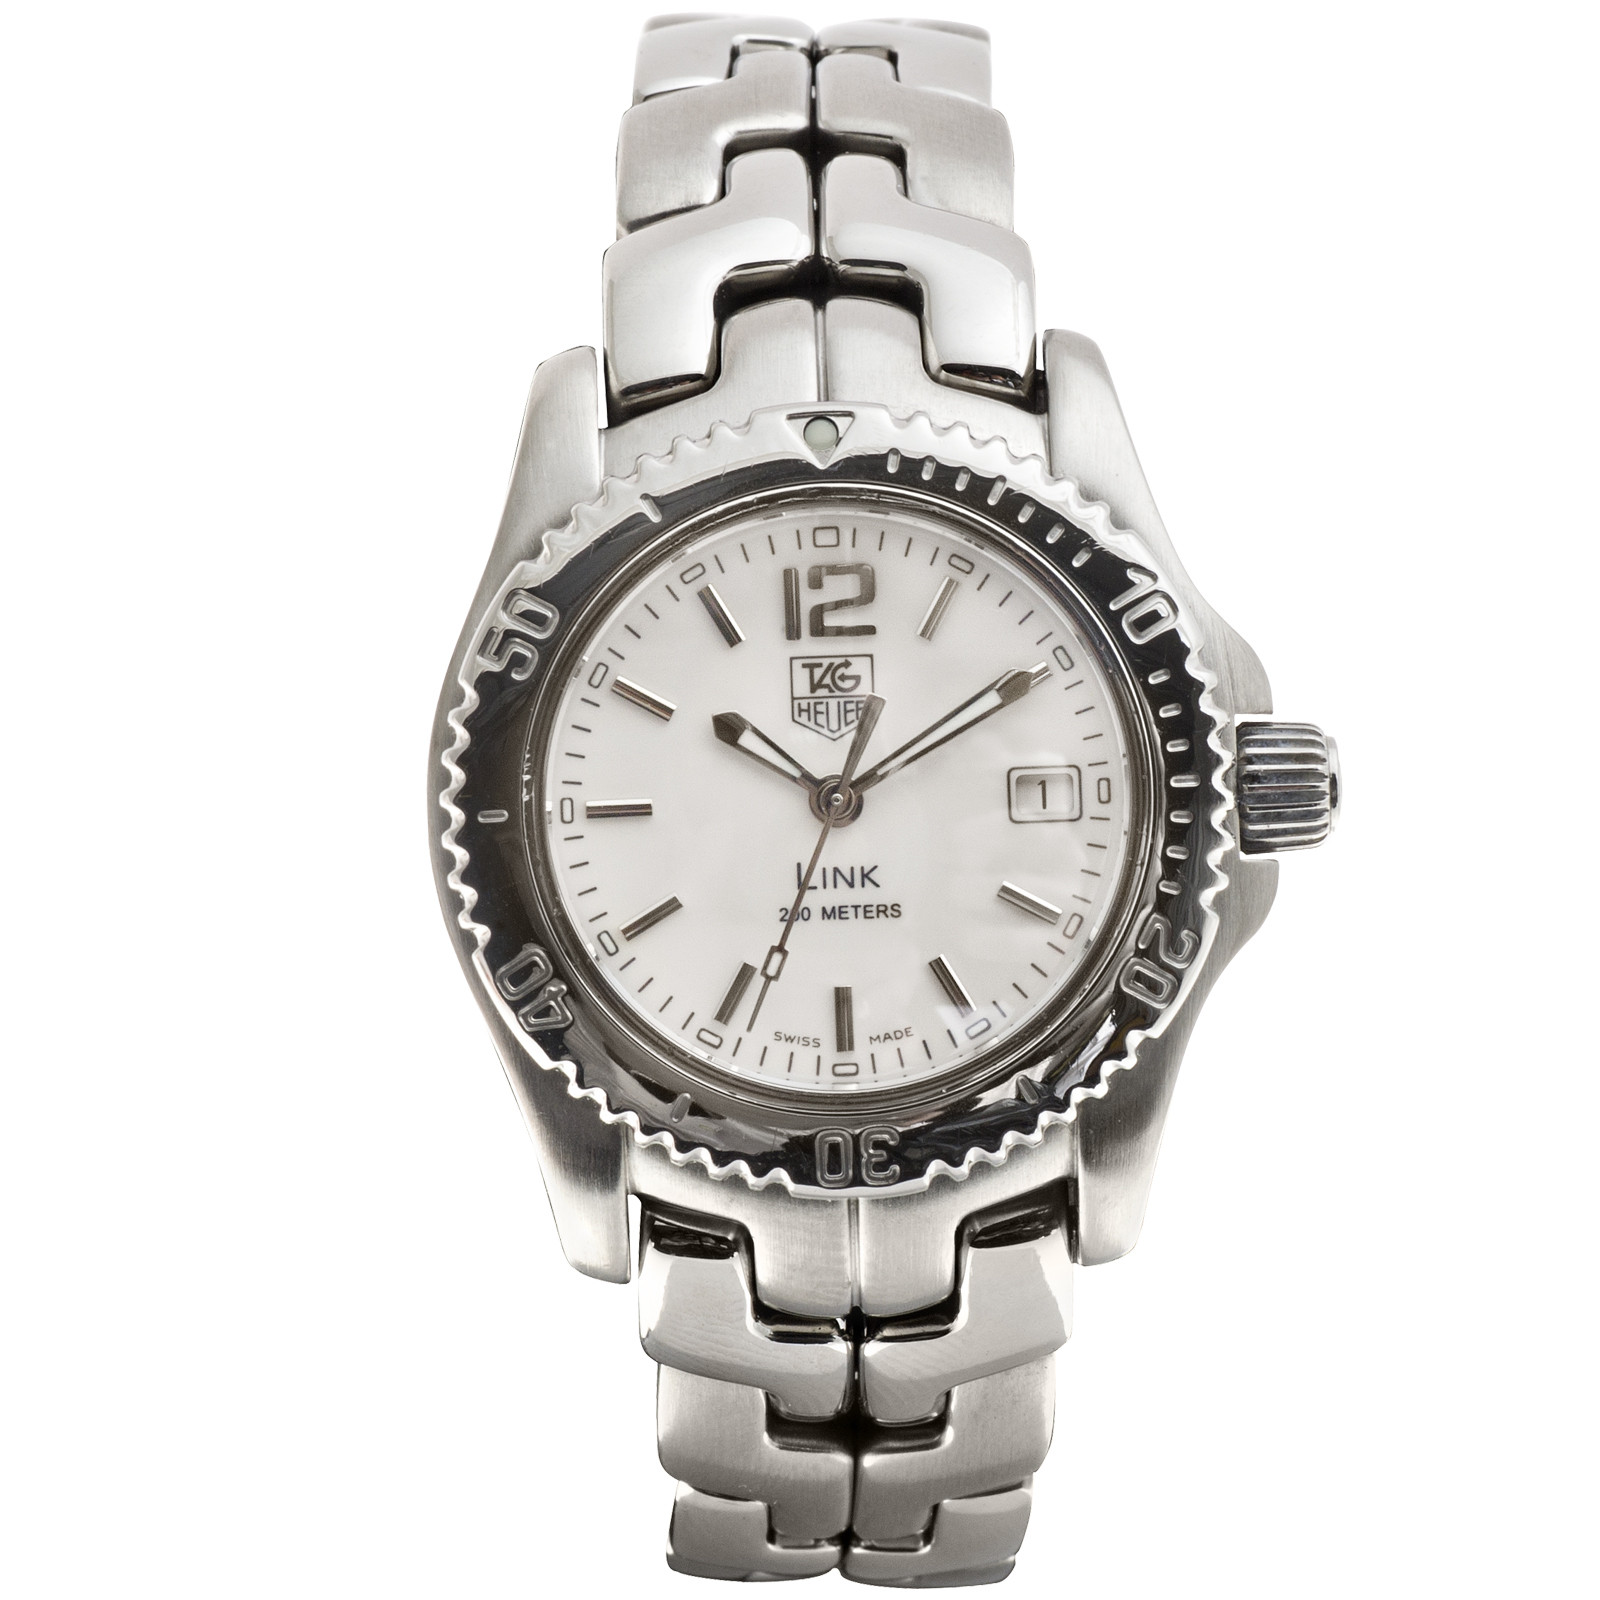 Preowned Women's Tag Heuer Link Date